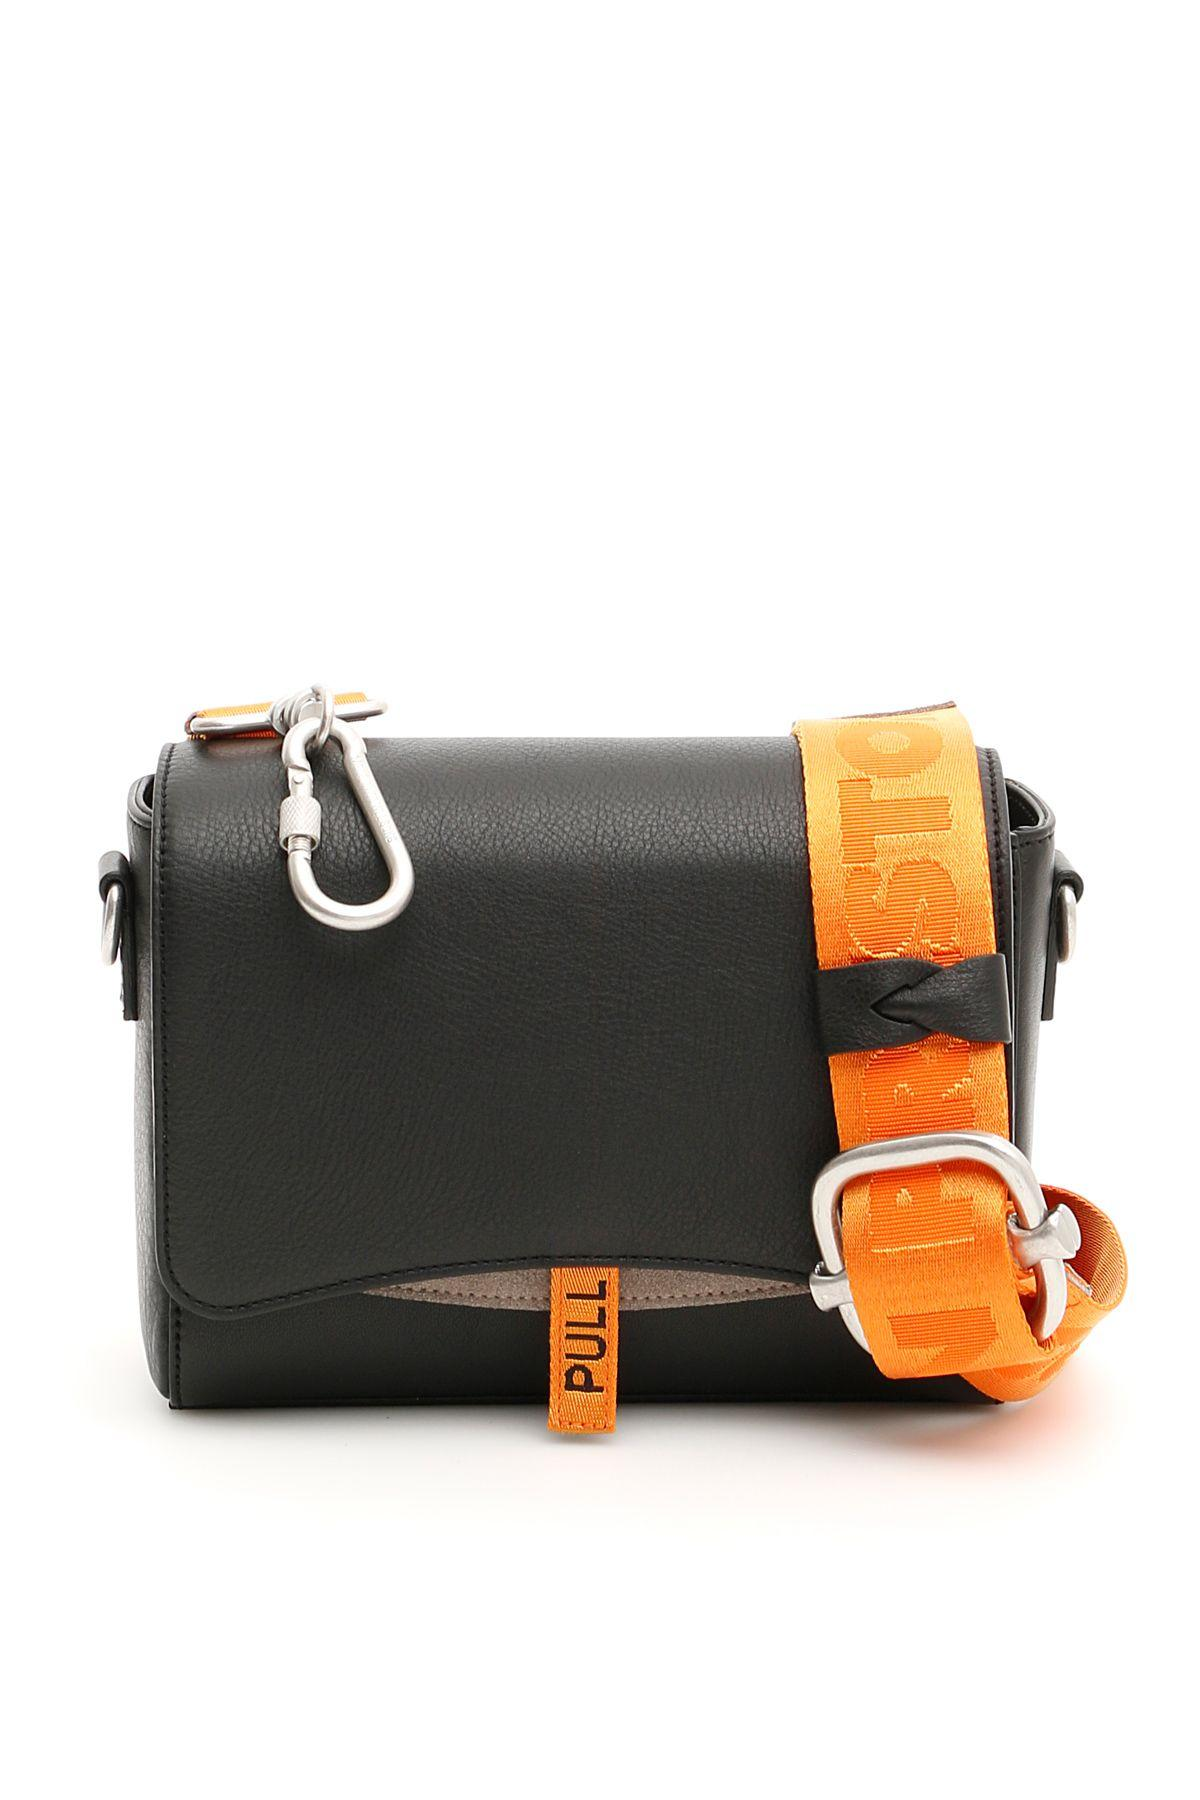 463c1ee8687b Heron Preston Black   Orange Leather Flap Bag